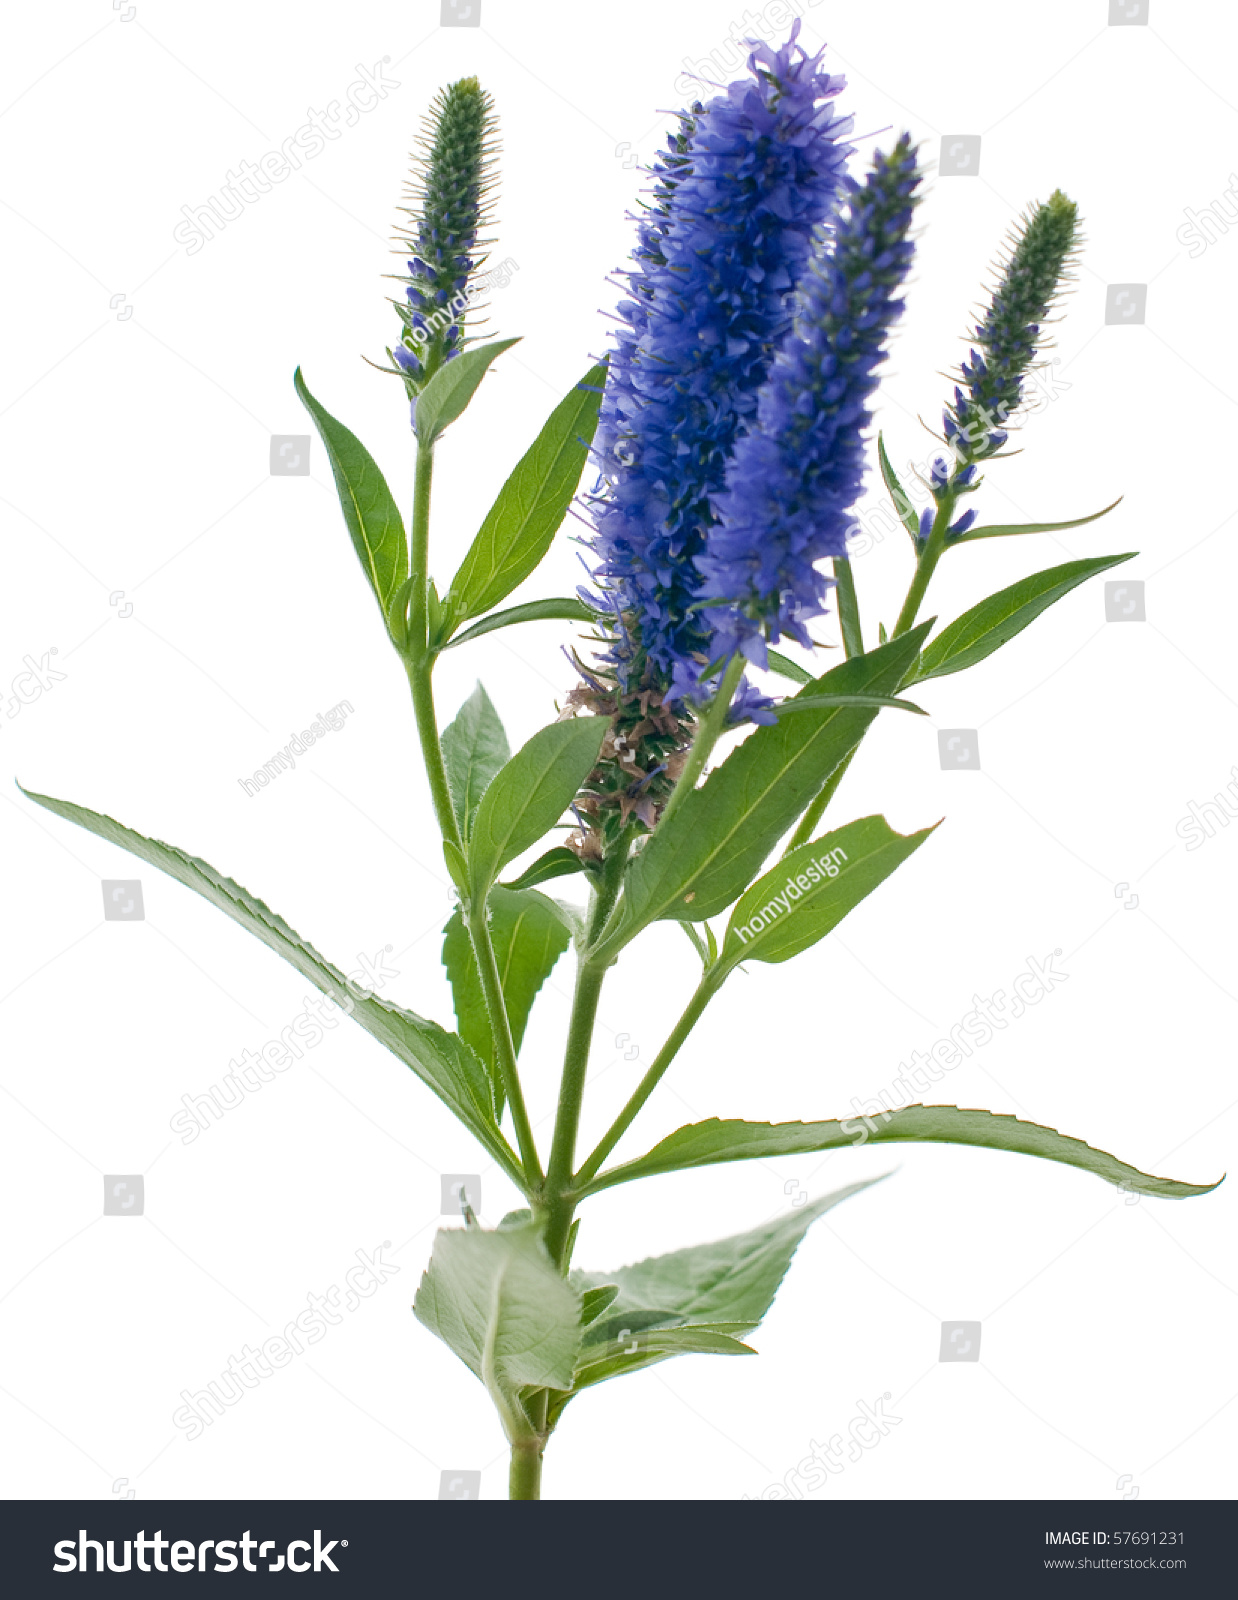 Veronica flowering spikes isolated on white background ez canvas id 57691231 mightylinksfo